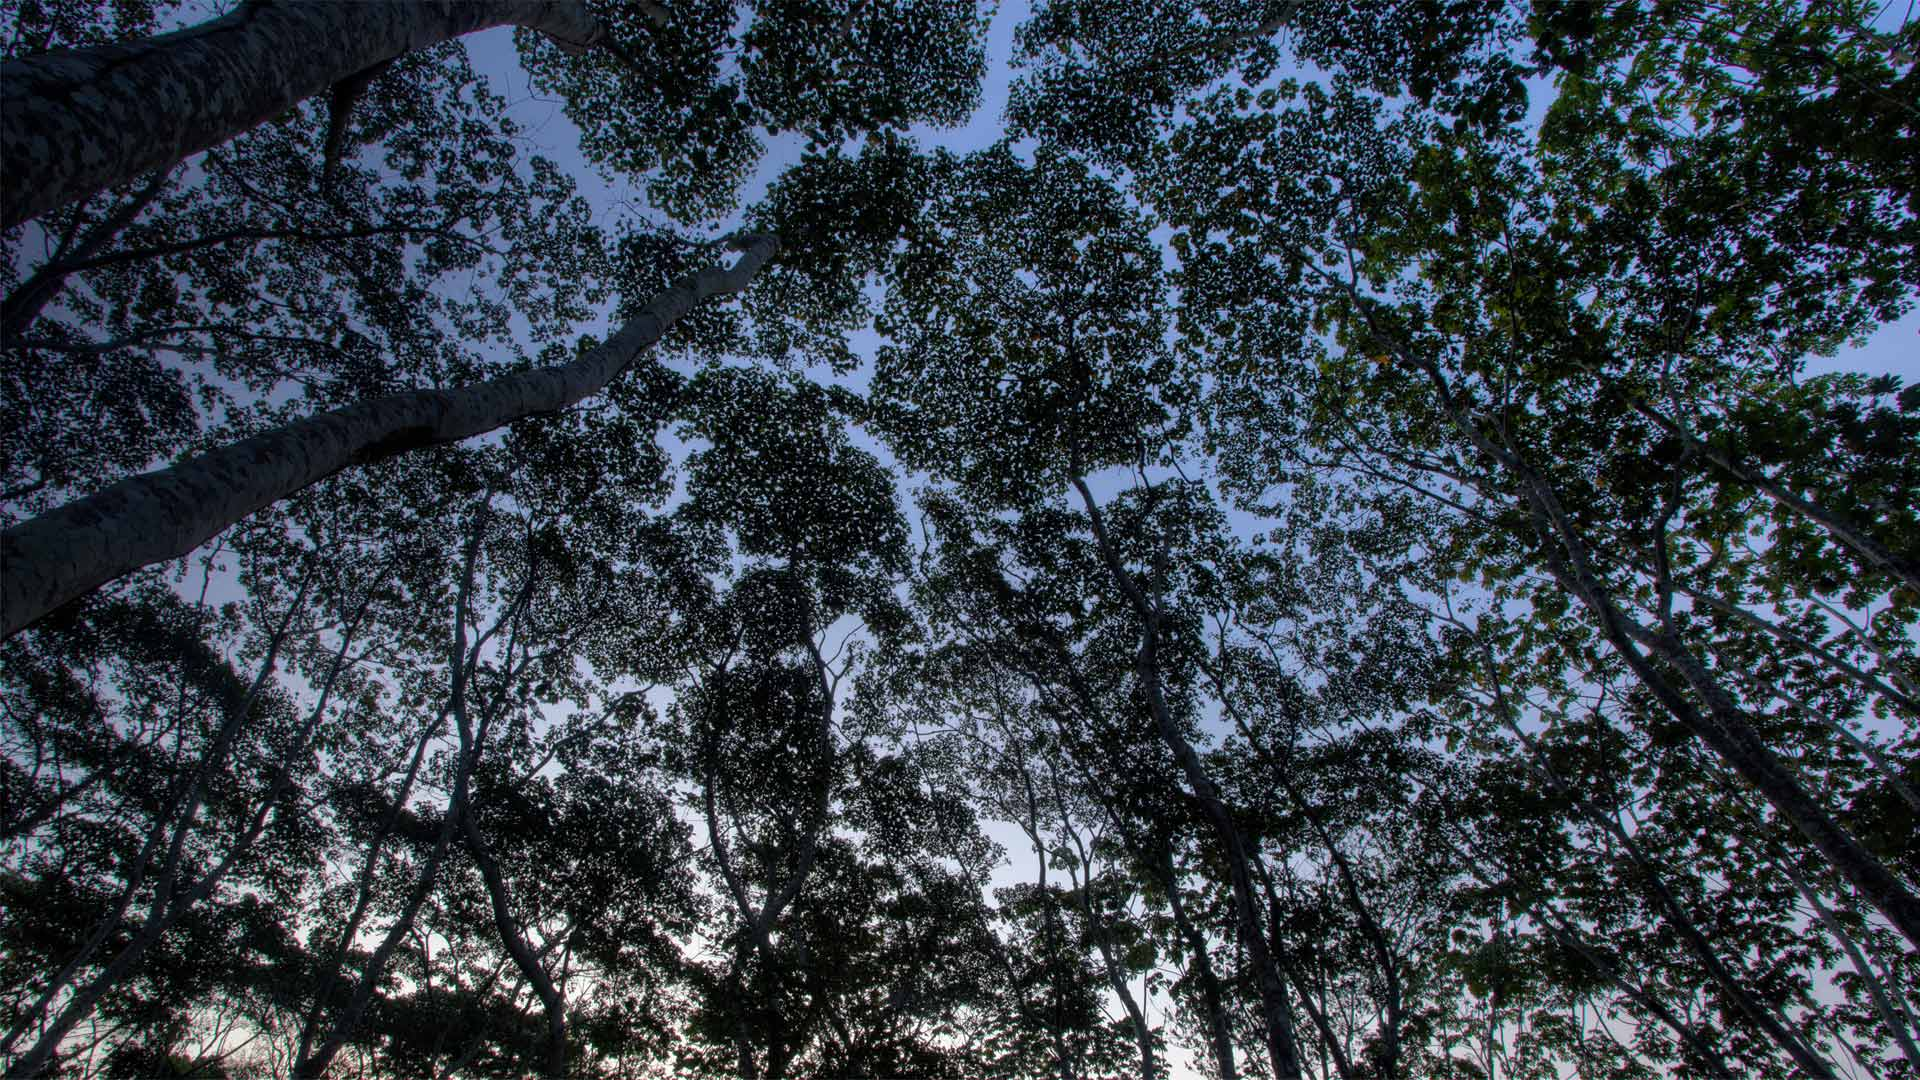 The tree canopy in the Tambopata National Reserve of the Peruvian Amazon (© Patrick Brandenburg/Tandem Stills + Motion)(Bing United States)